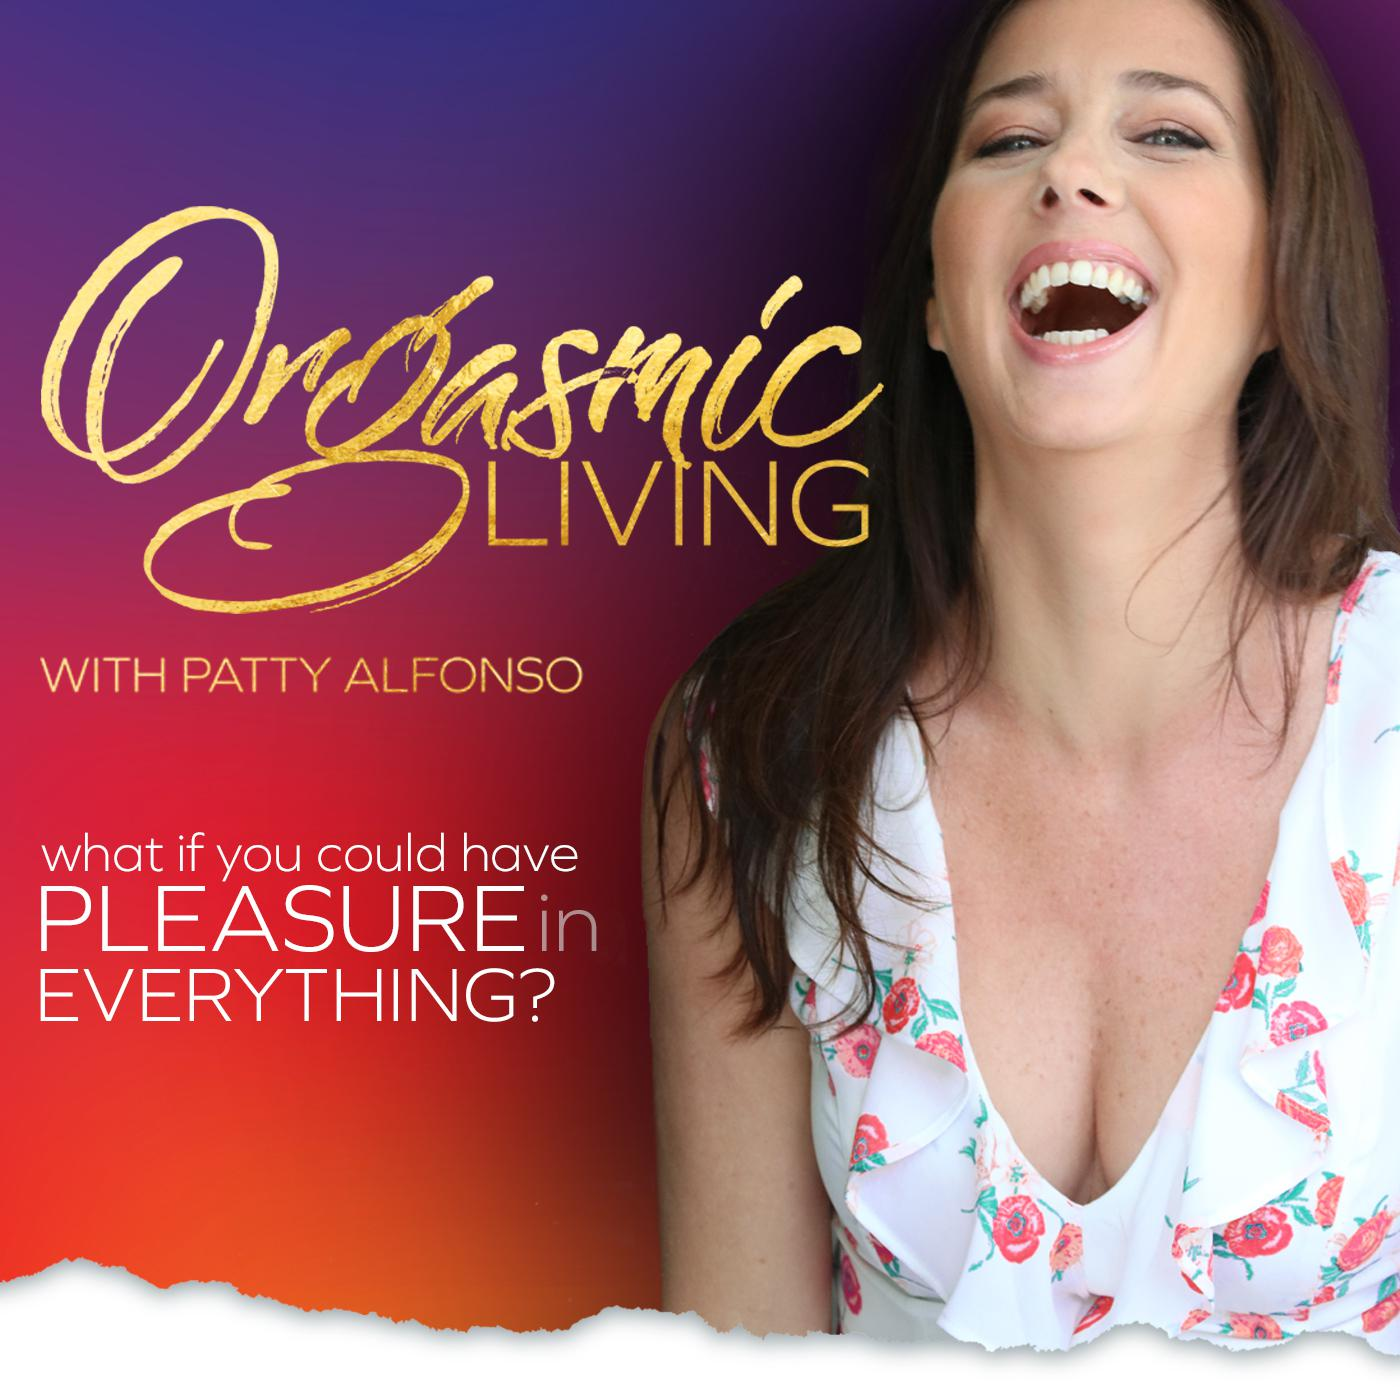 https://thebestyouexpo.com/us/wp-content/uploads/2019/12/orgasmic-living-patty-alfonso.jpg